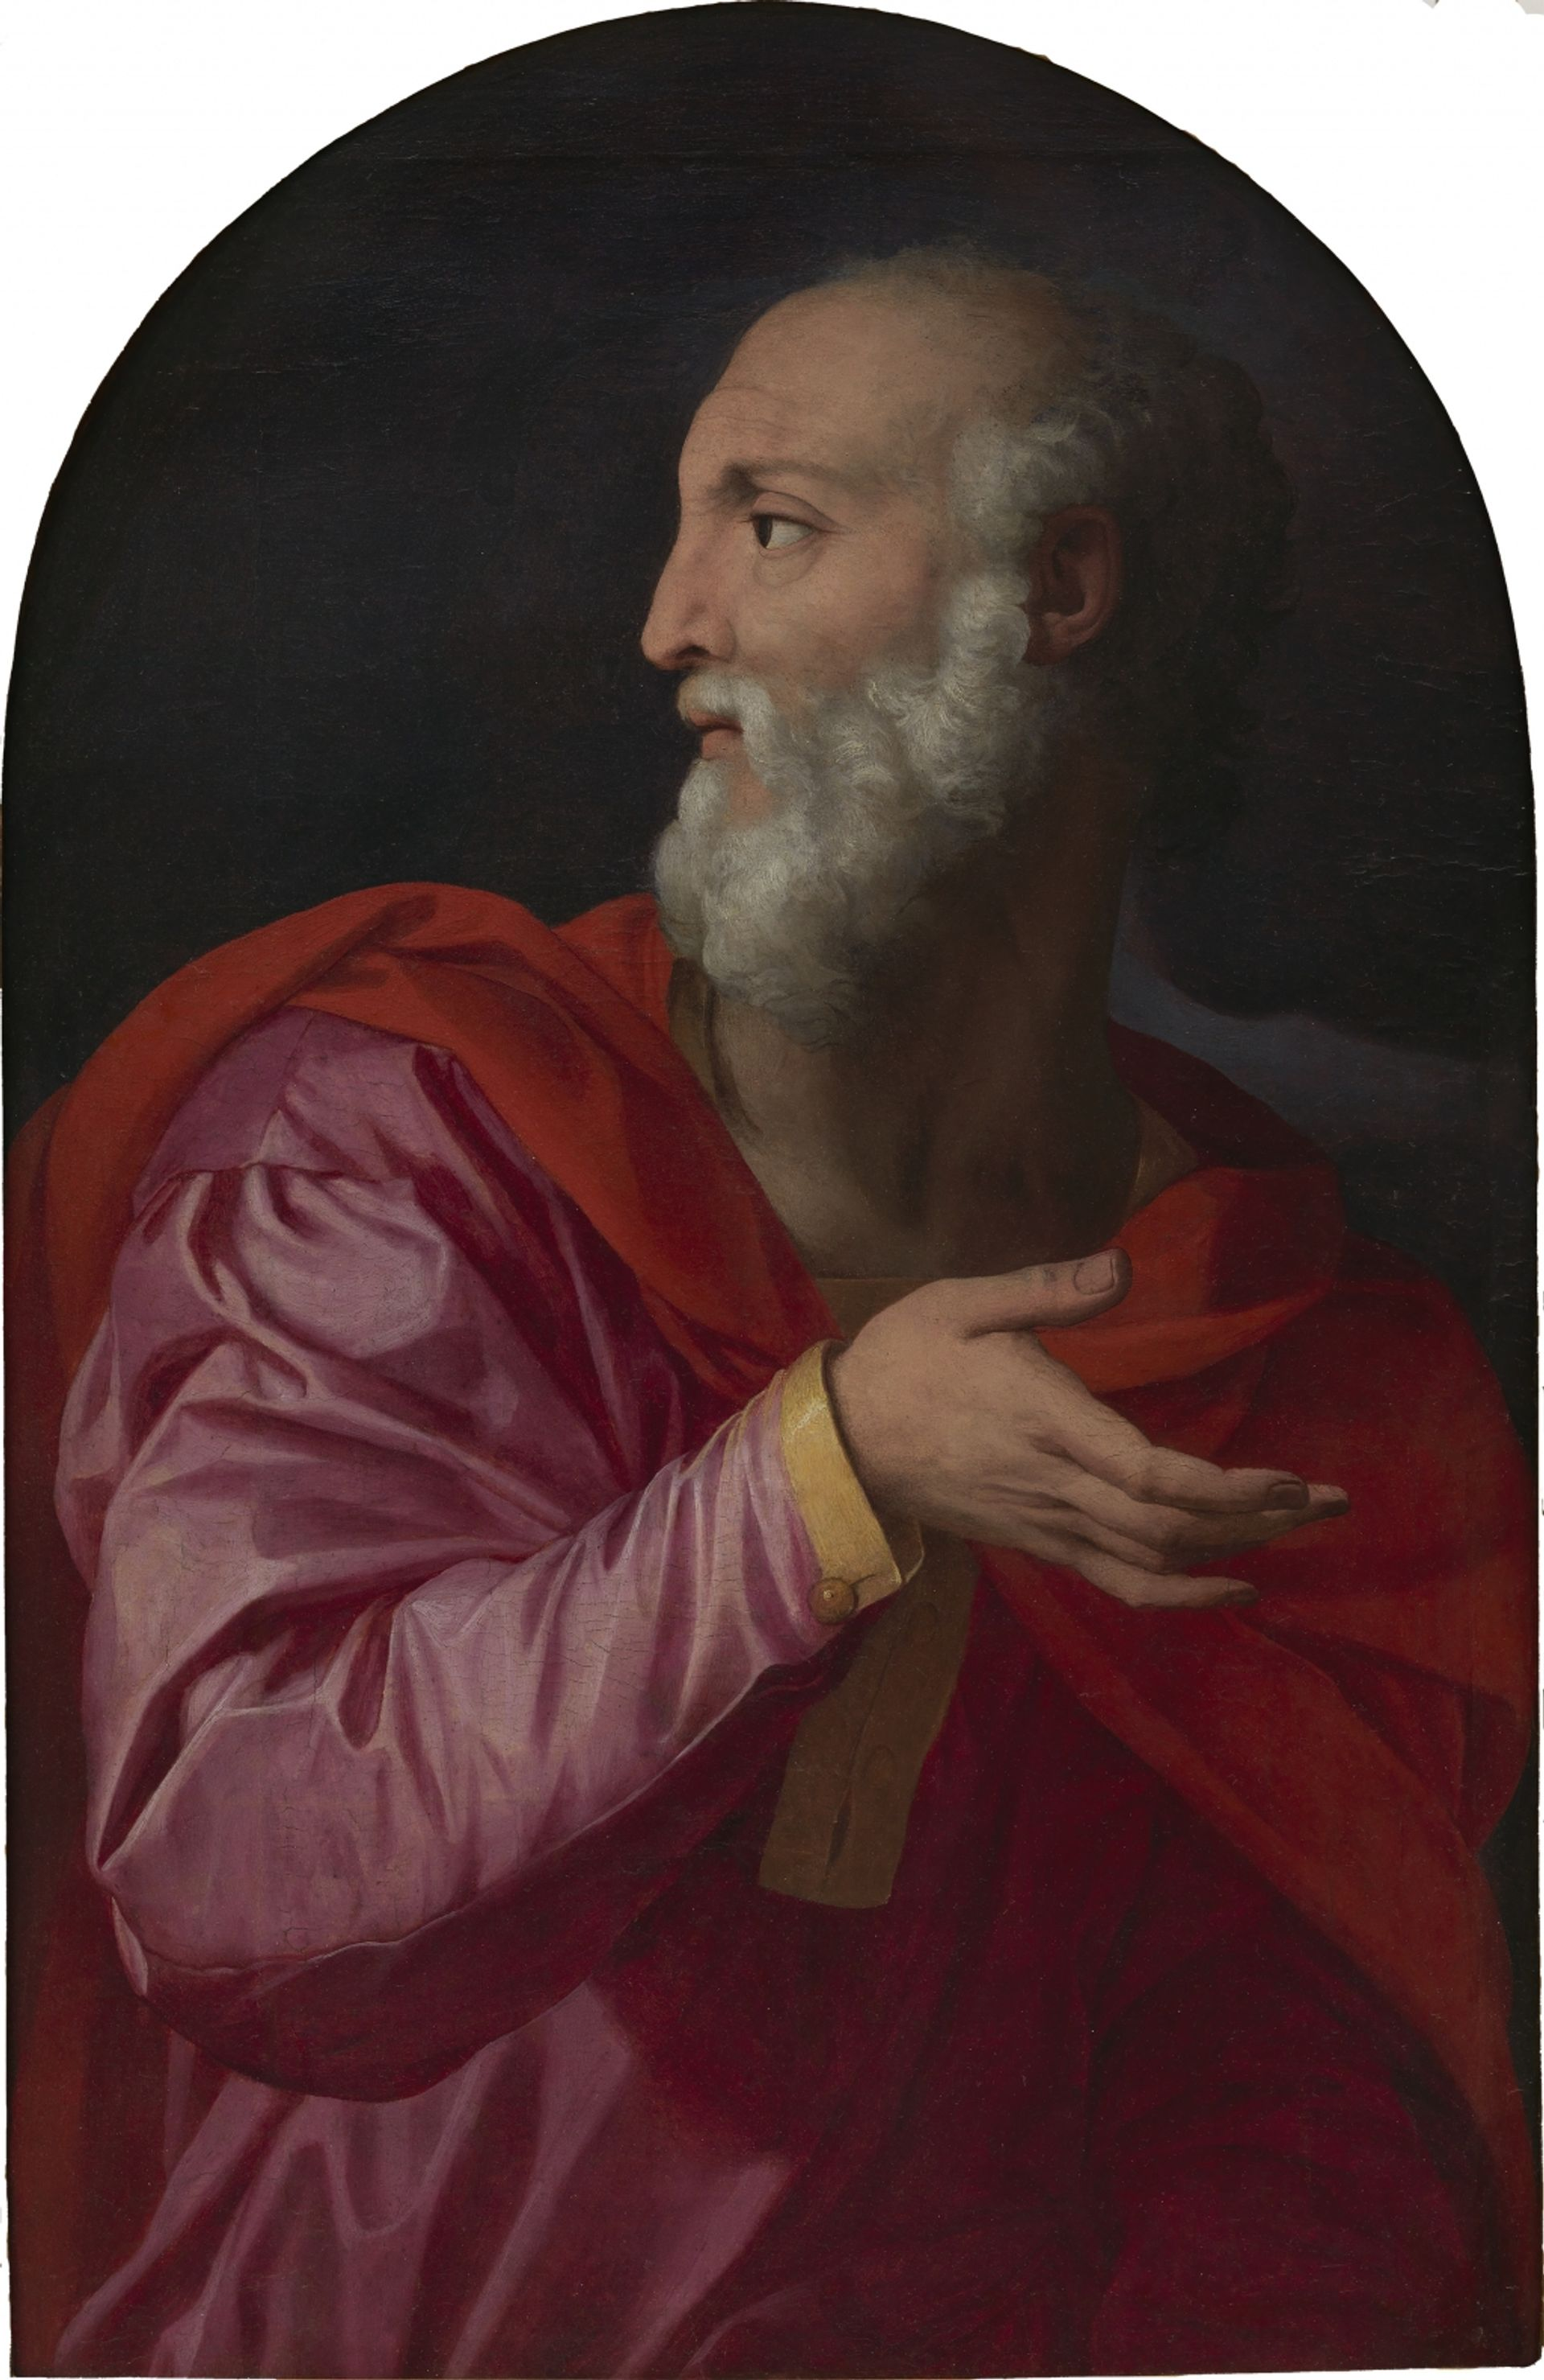 Saint Cosmas, attributed to Agnolo di Cosimo, better known as Bronzino. Courtesy of the Alana Collection